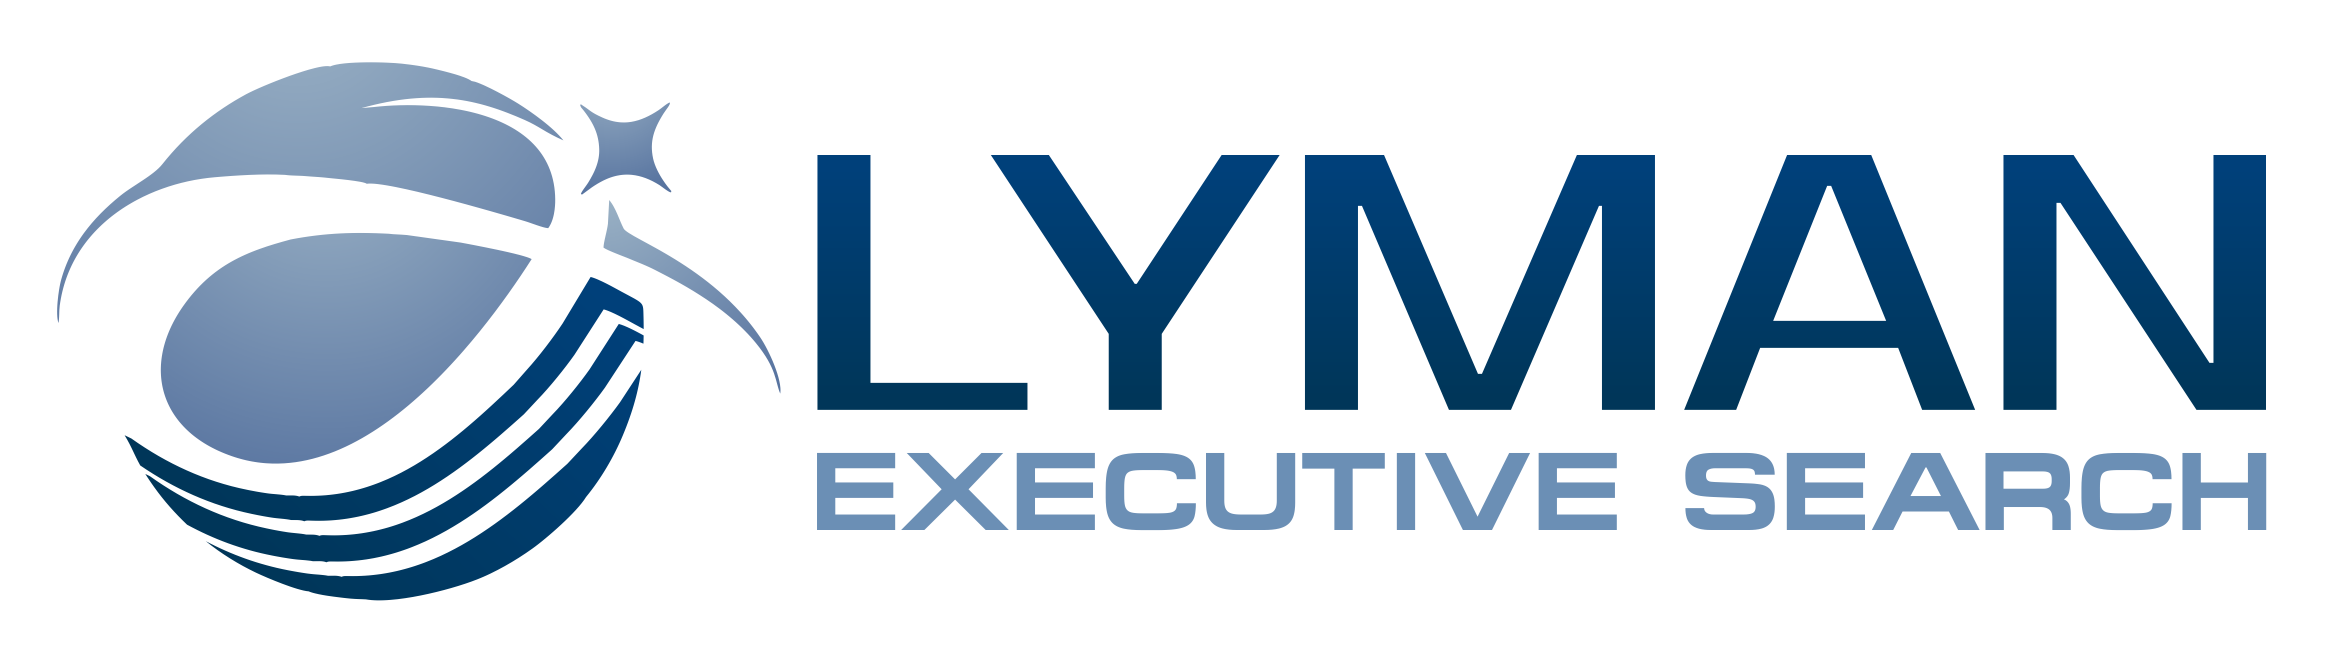 Lyman Executive Search, LLC